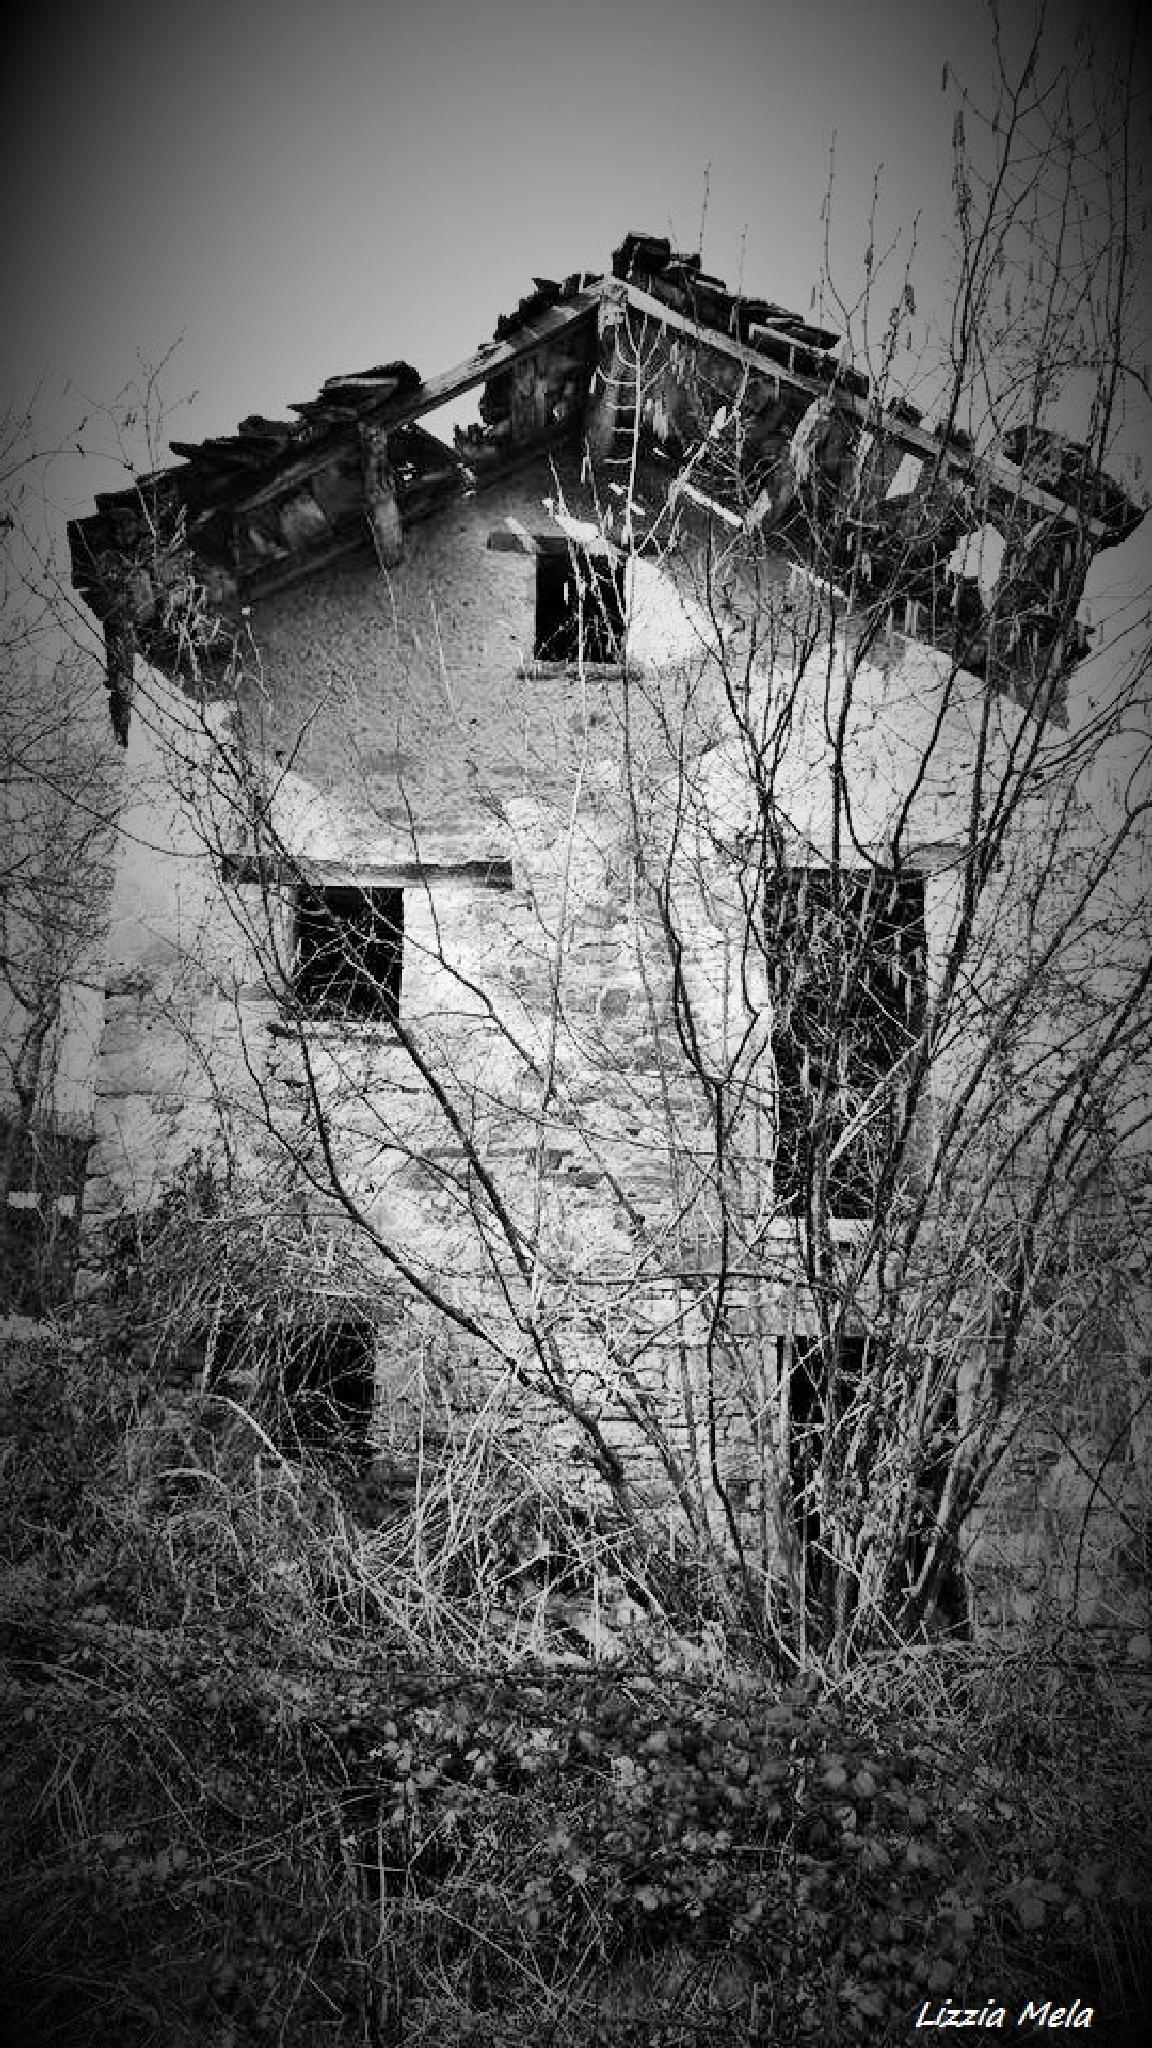 Ghost town (Ca Chiappa, Piacenza - Italy) by lizzia.mela